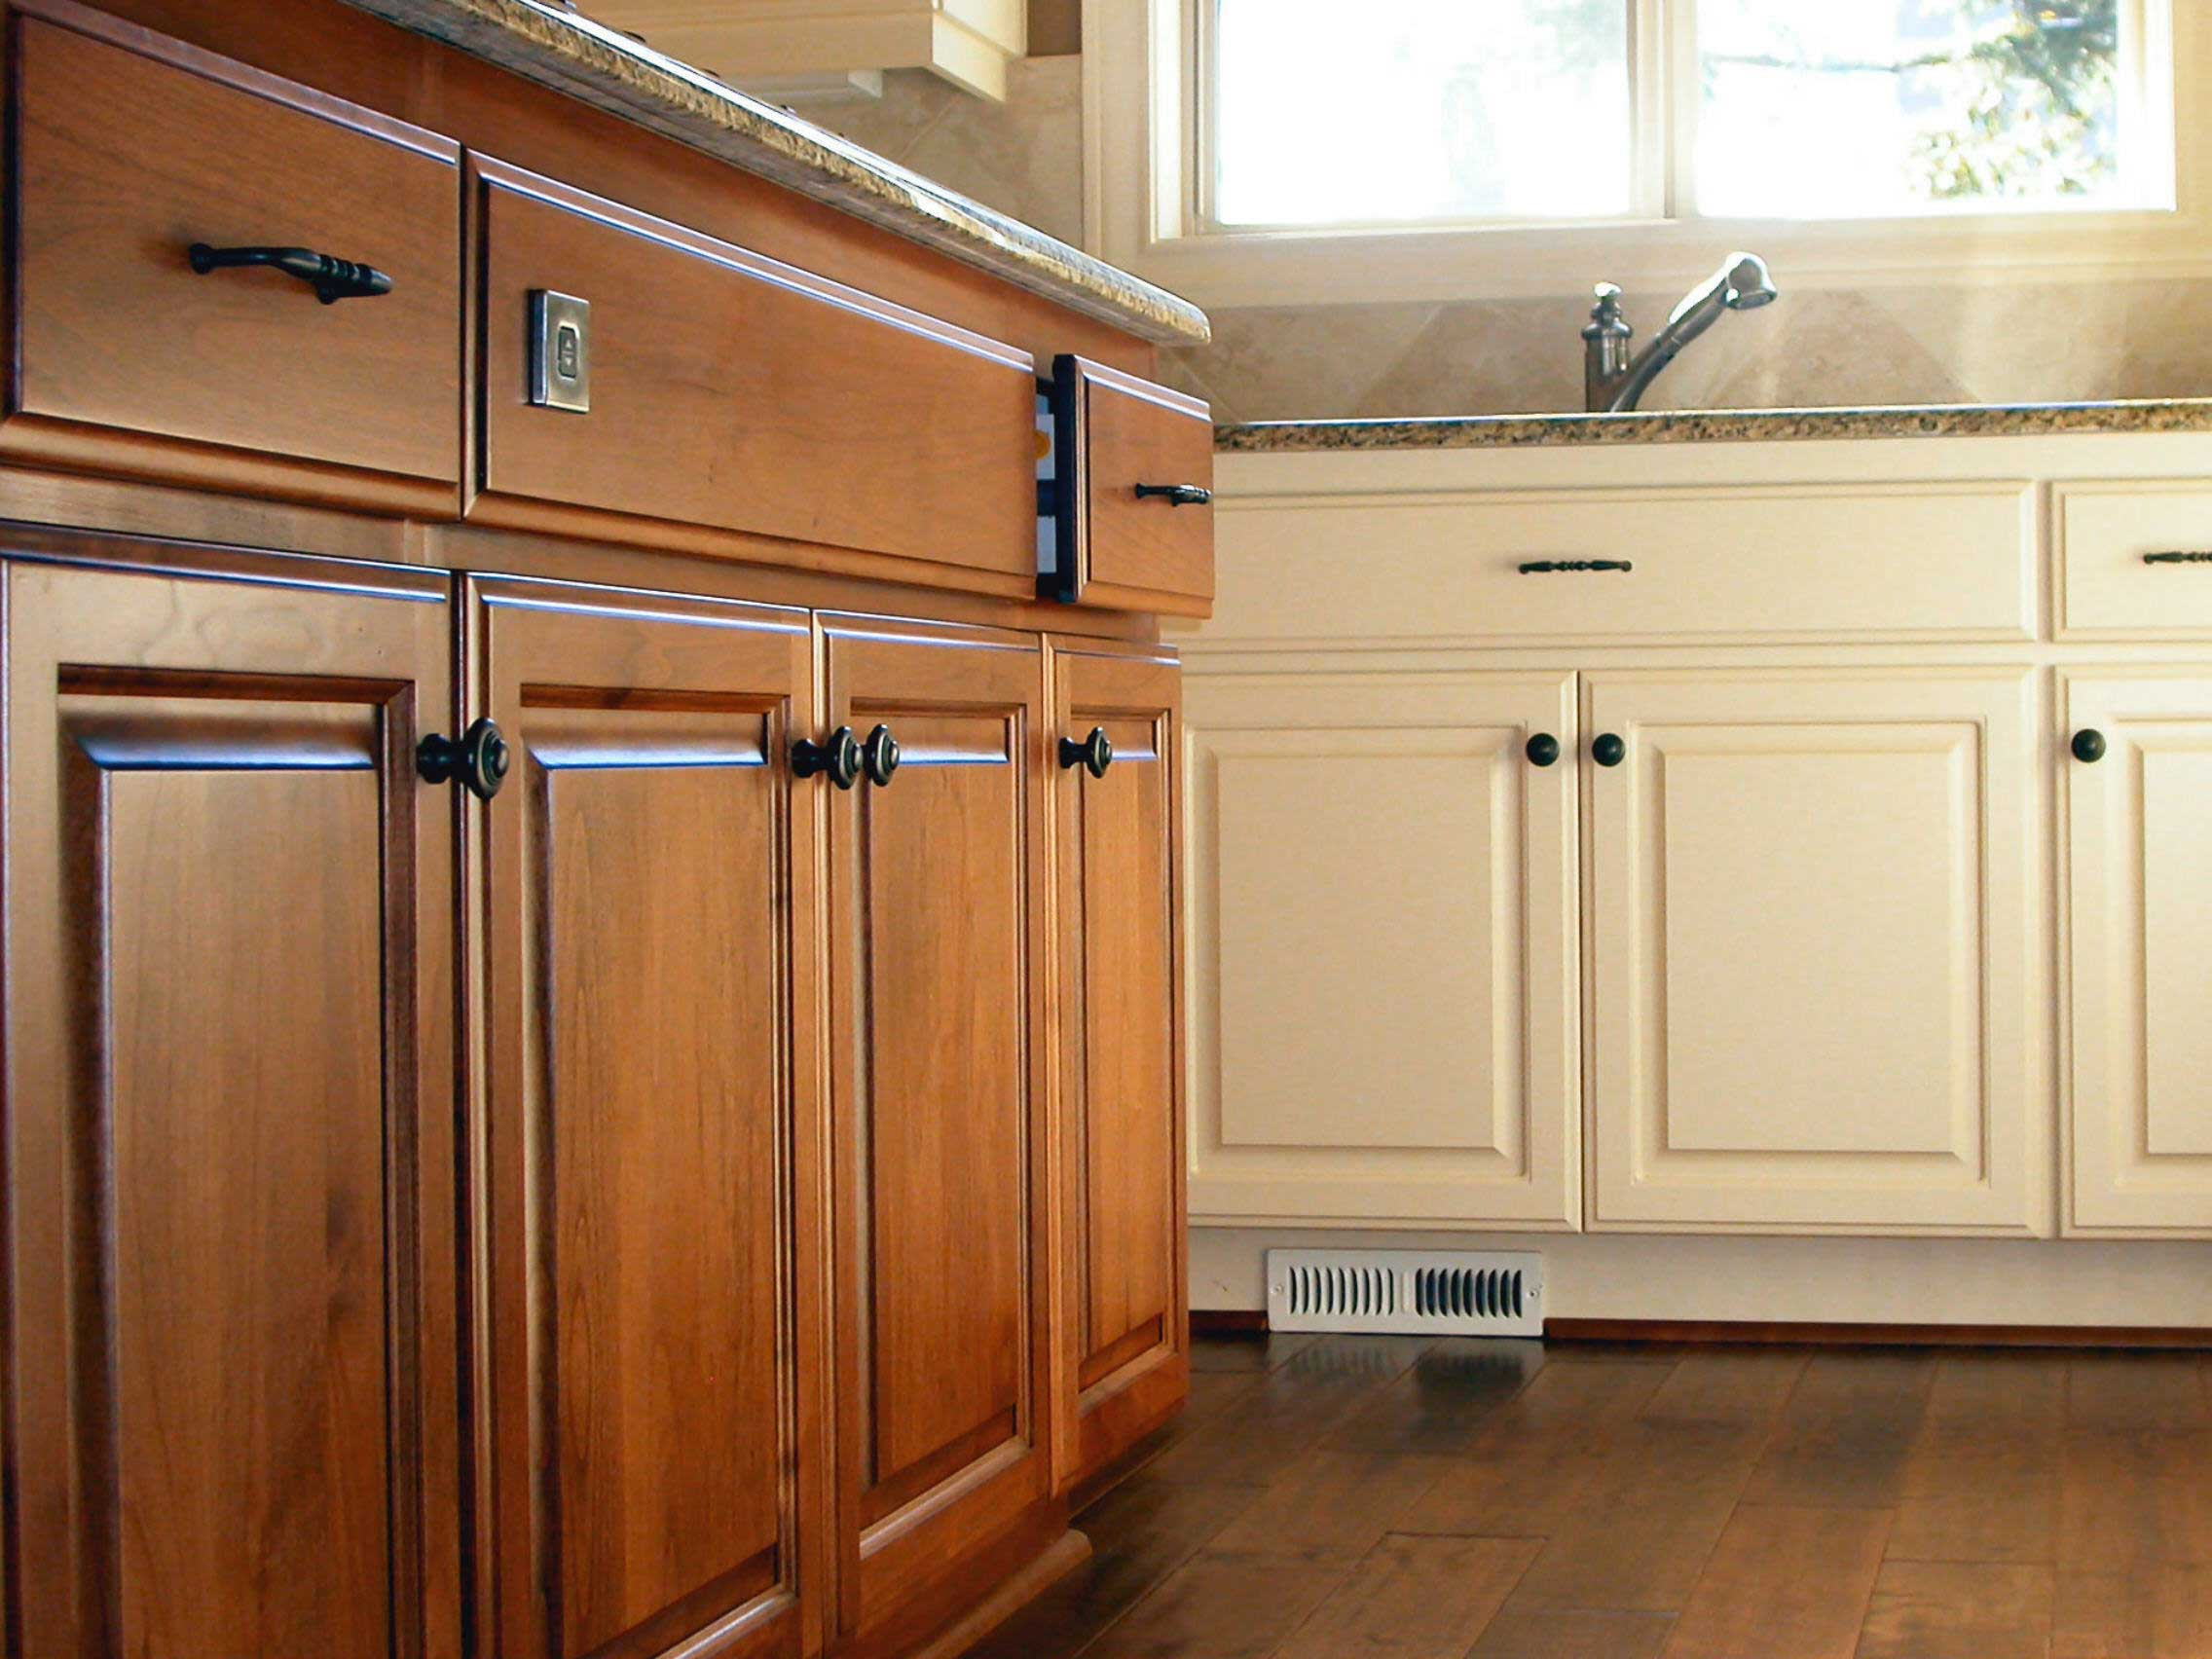 Diy Staining Kitchen Cabinets Image 3 Kitchen Cabinets Cabinet Hardware The Hampton